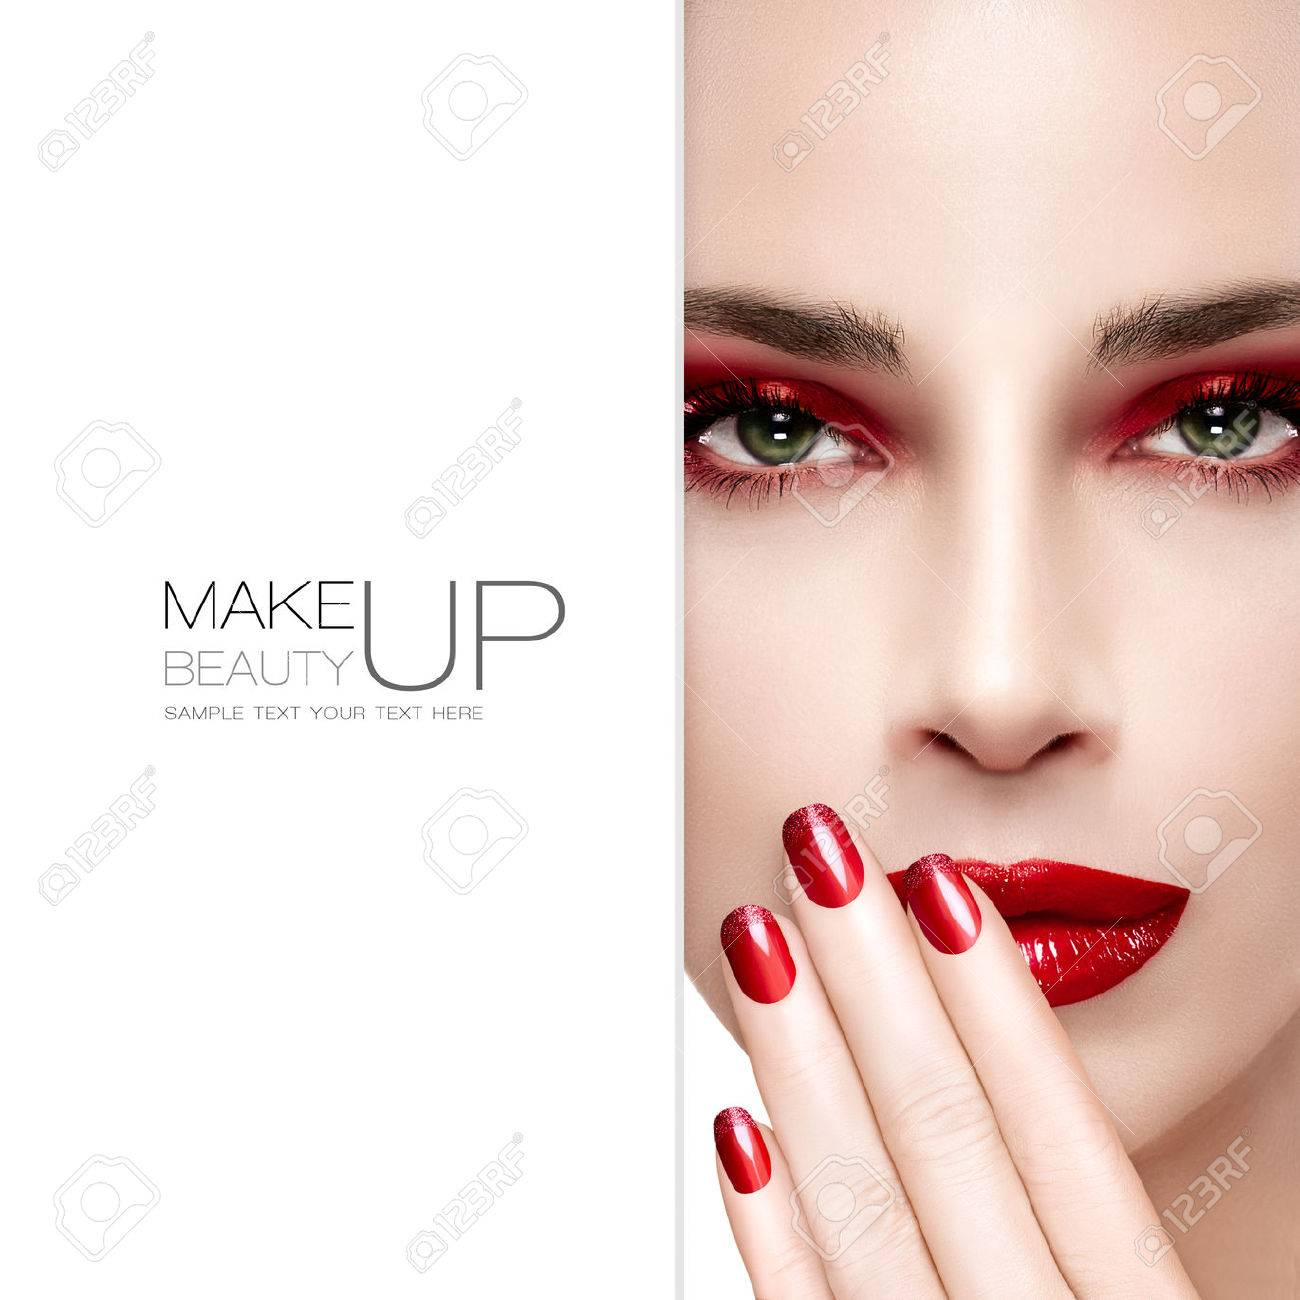 Beauty and Makeup concept. Beautiful fashion model woman with bright make-up. Trendy red lips and smoky eyes. Long eyelashes. High fashion portrait. Blank copyspace alongside and sample text. Template design - 46003250